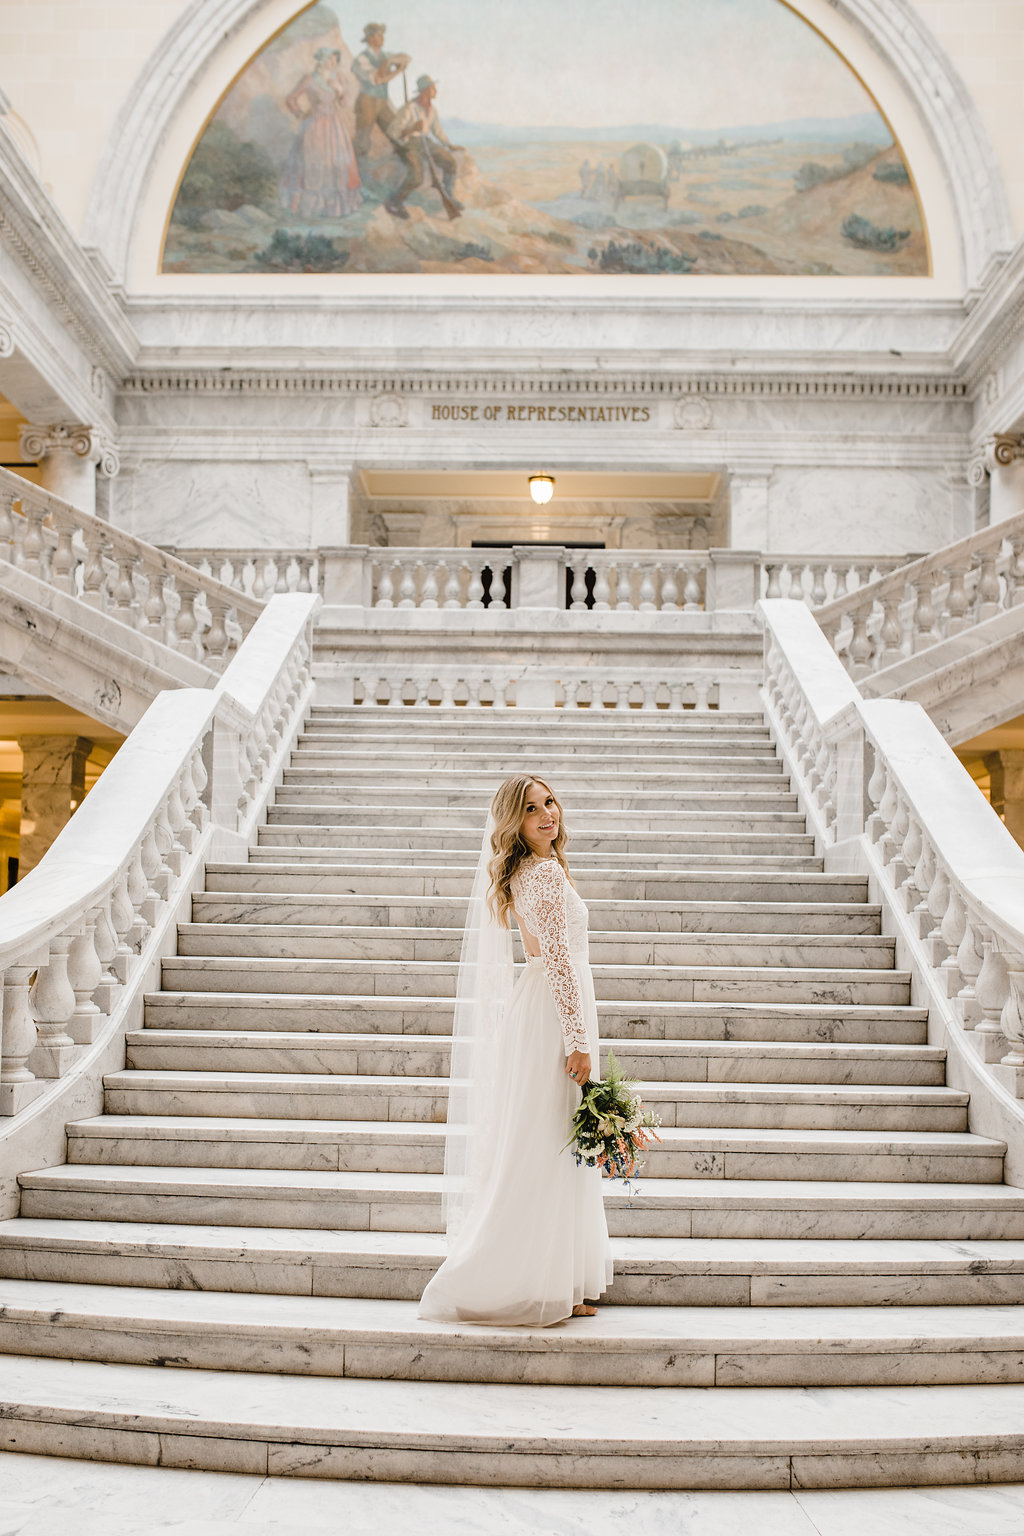 bridals utah state capitol building wedding photography beautiful bride salt lake city